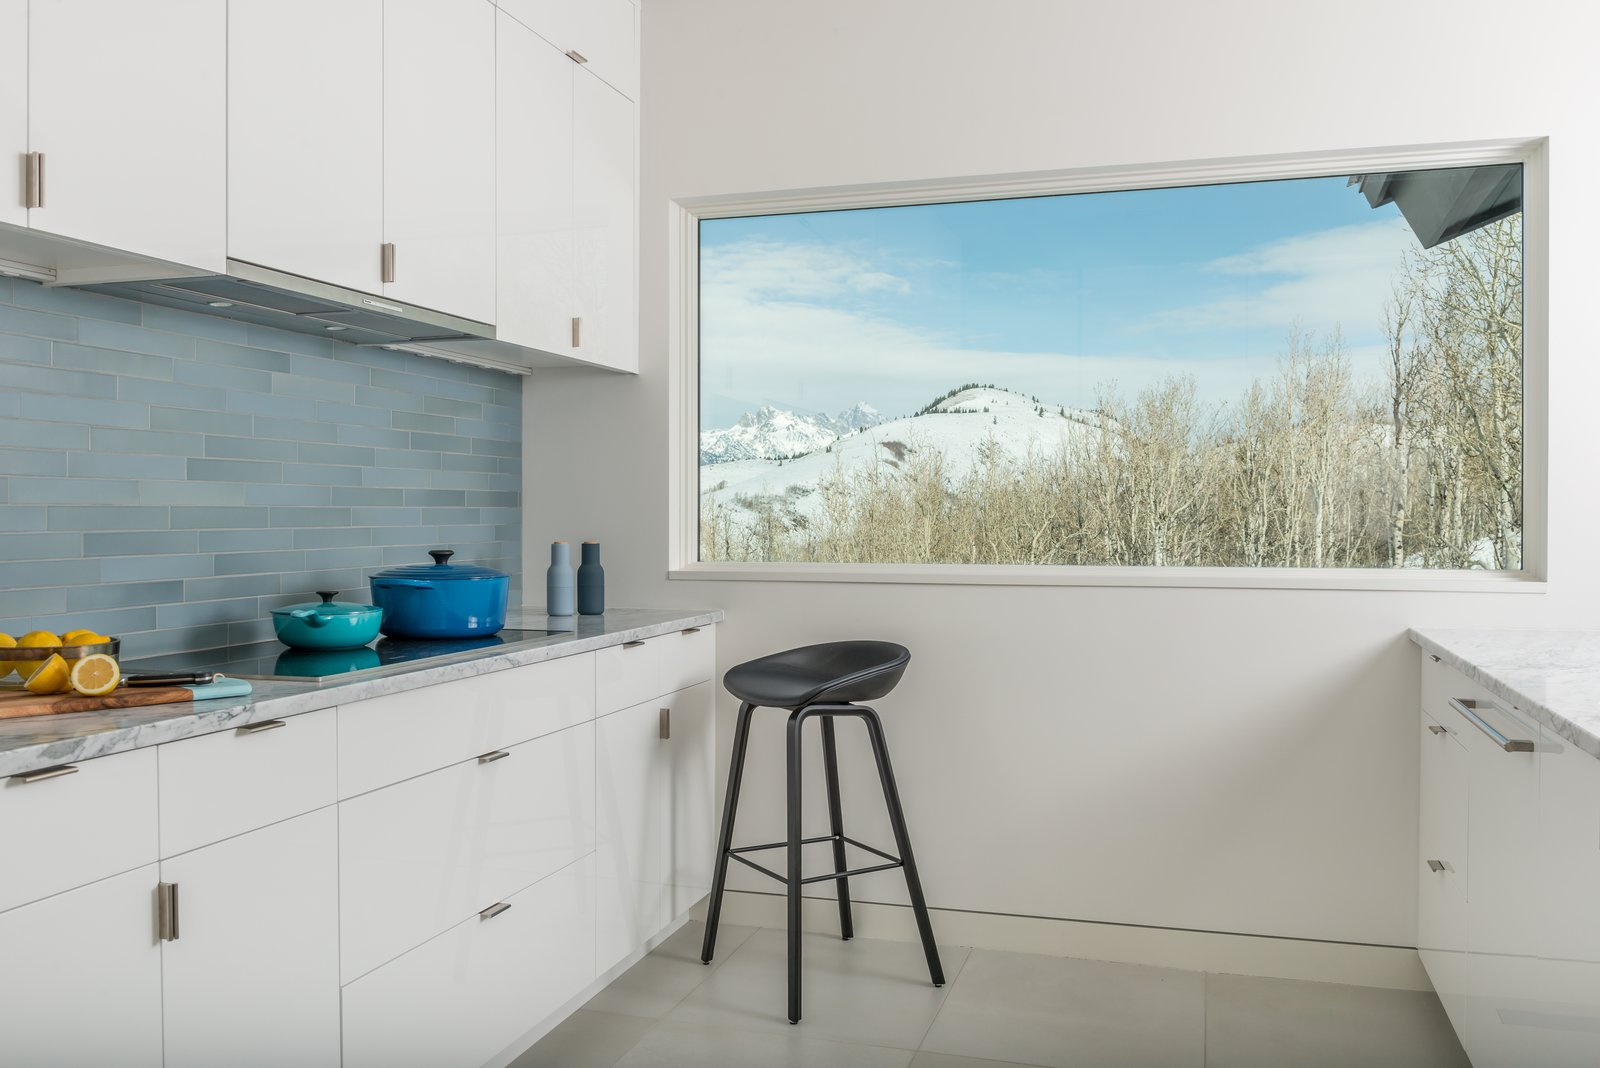 Honed, white Carrera marble countertops blend with exterior views to the Teton Mountain Range.  San Francisco Meets Jackson Hole in a Modern Renovation